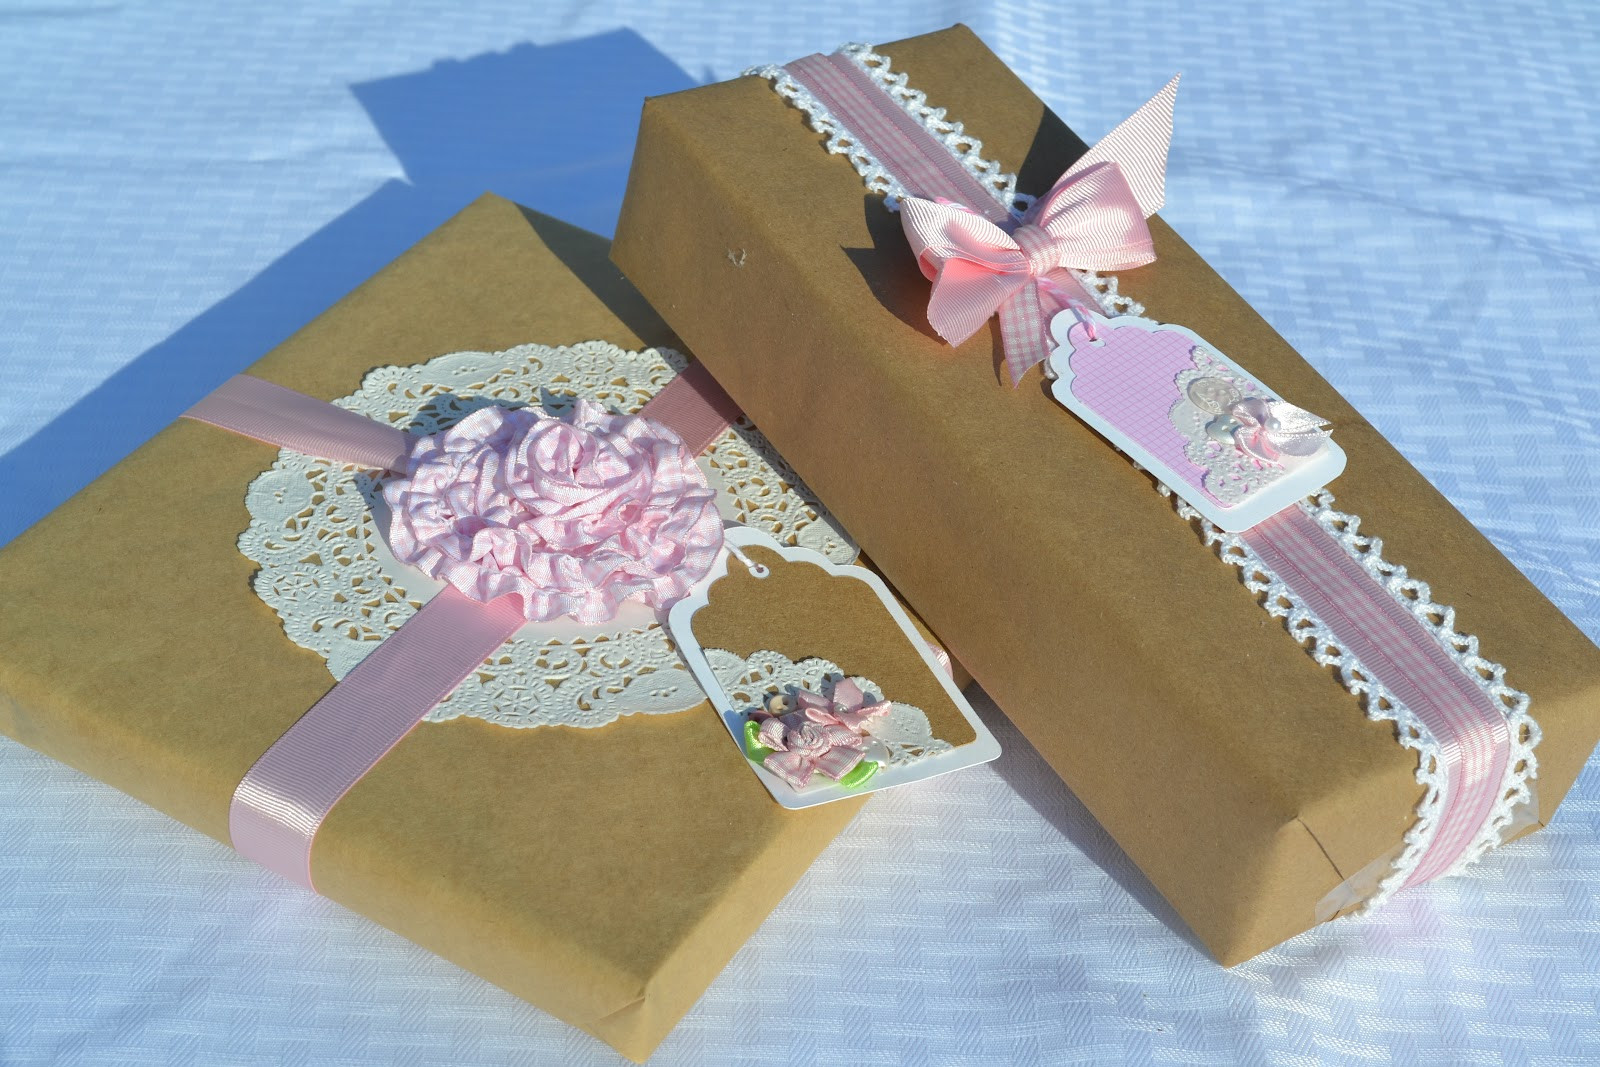 Best ideas about Baby Shower Gift Wrap Ideas . Save or Pin Corner of Plaid and Paisley Baby Shower Gift Wrap Now.